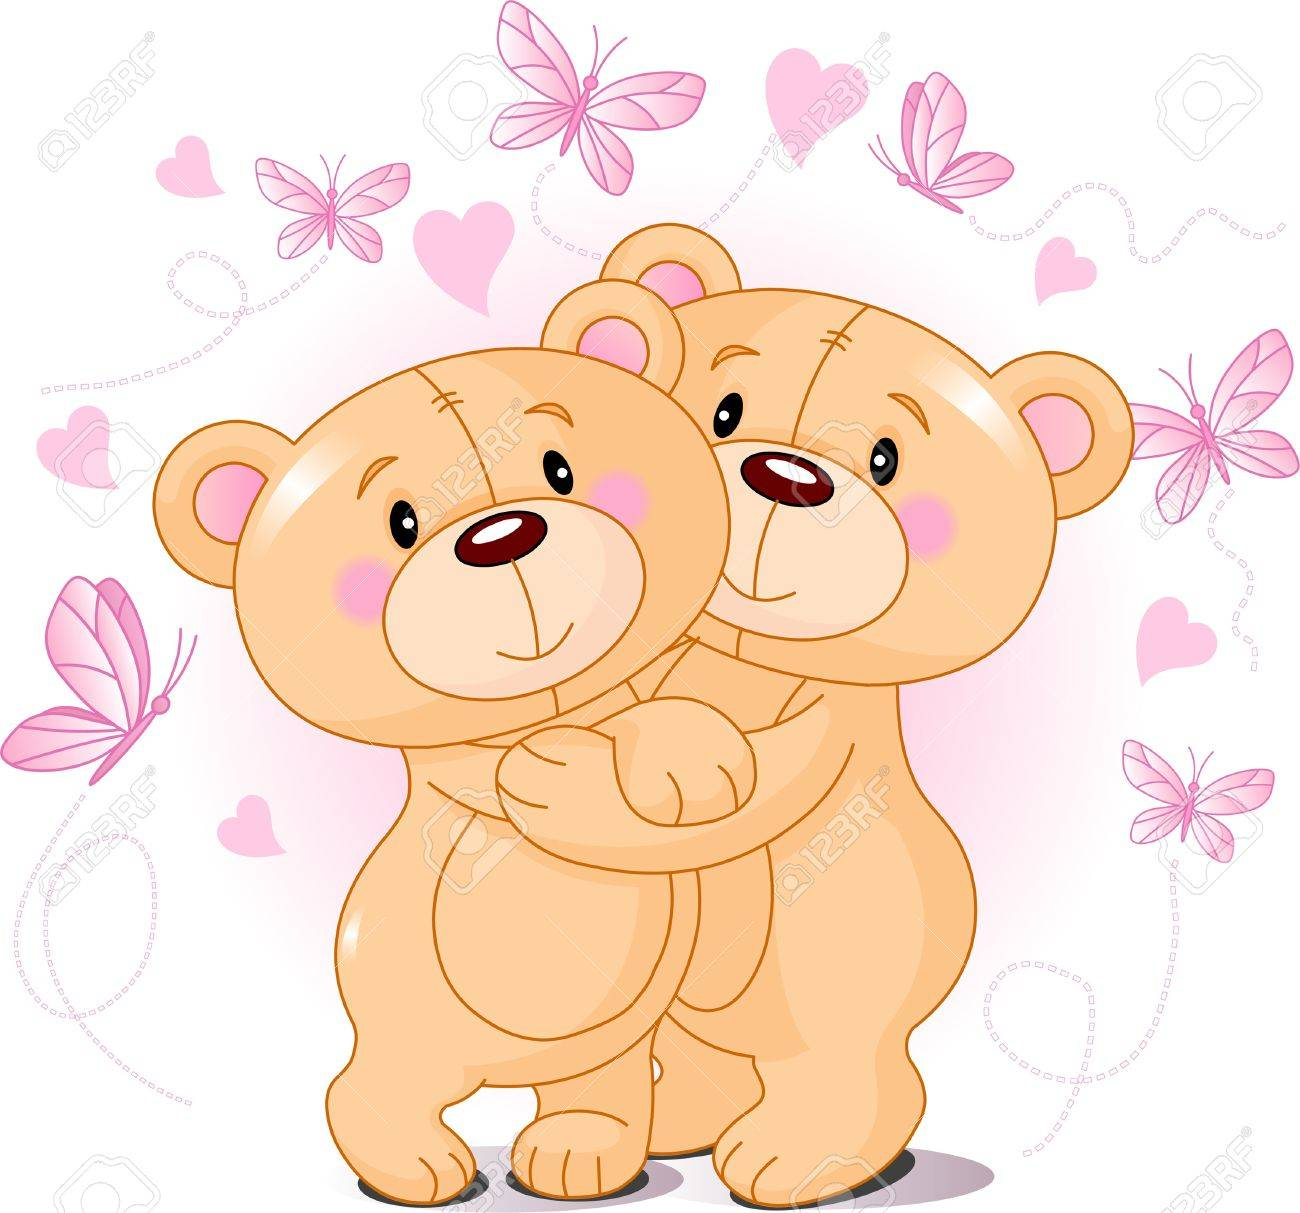 Two Cute Teddy Bears In Love Royalty Free Cliparts, Vectors, And ...